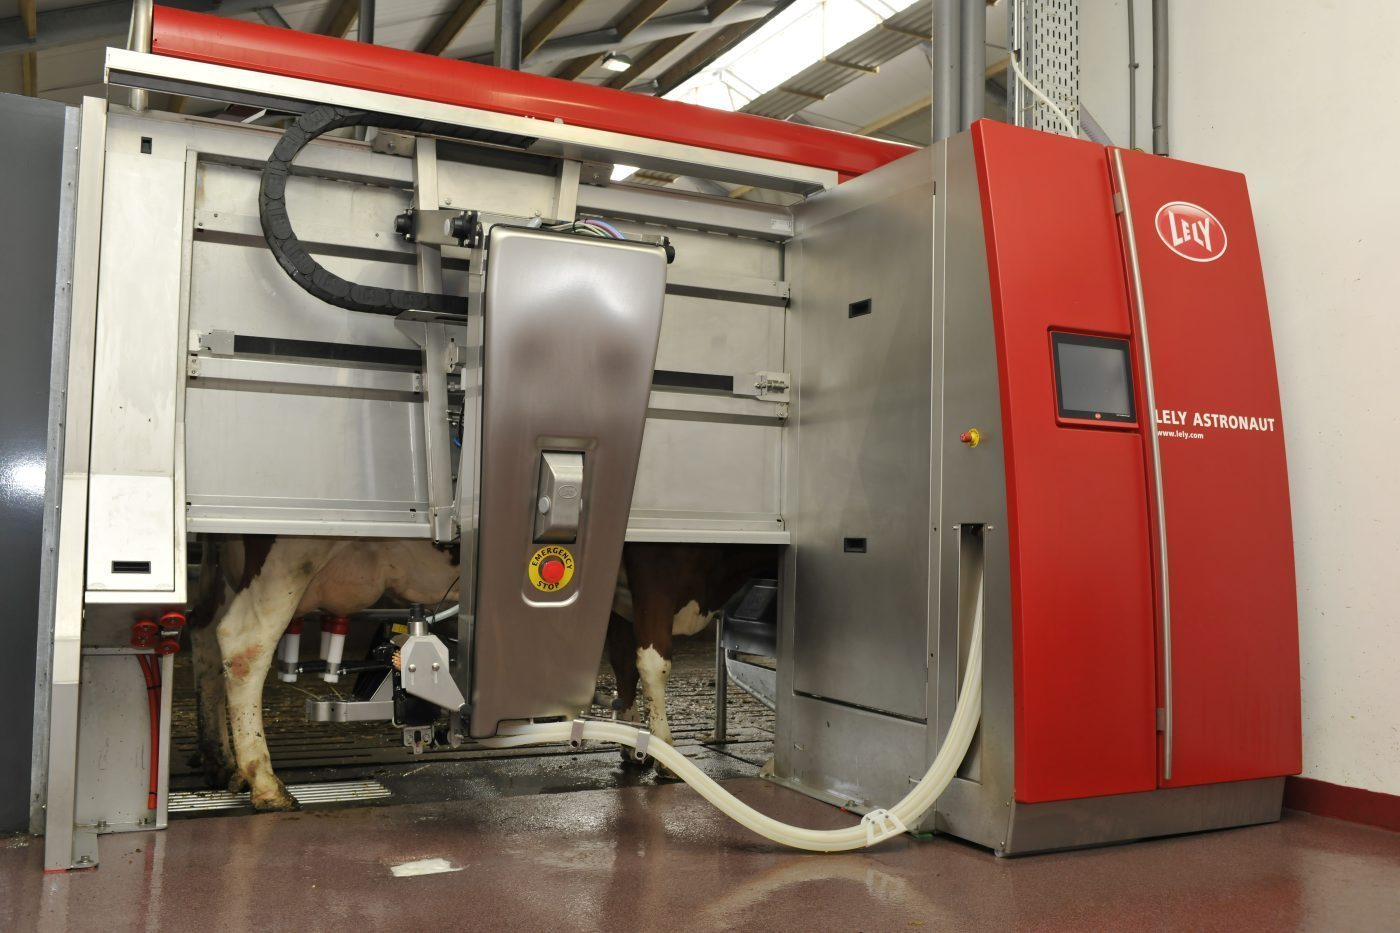 state-of-the-art automatic milking machine on an Irish dairy farm